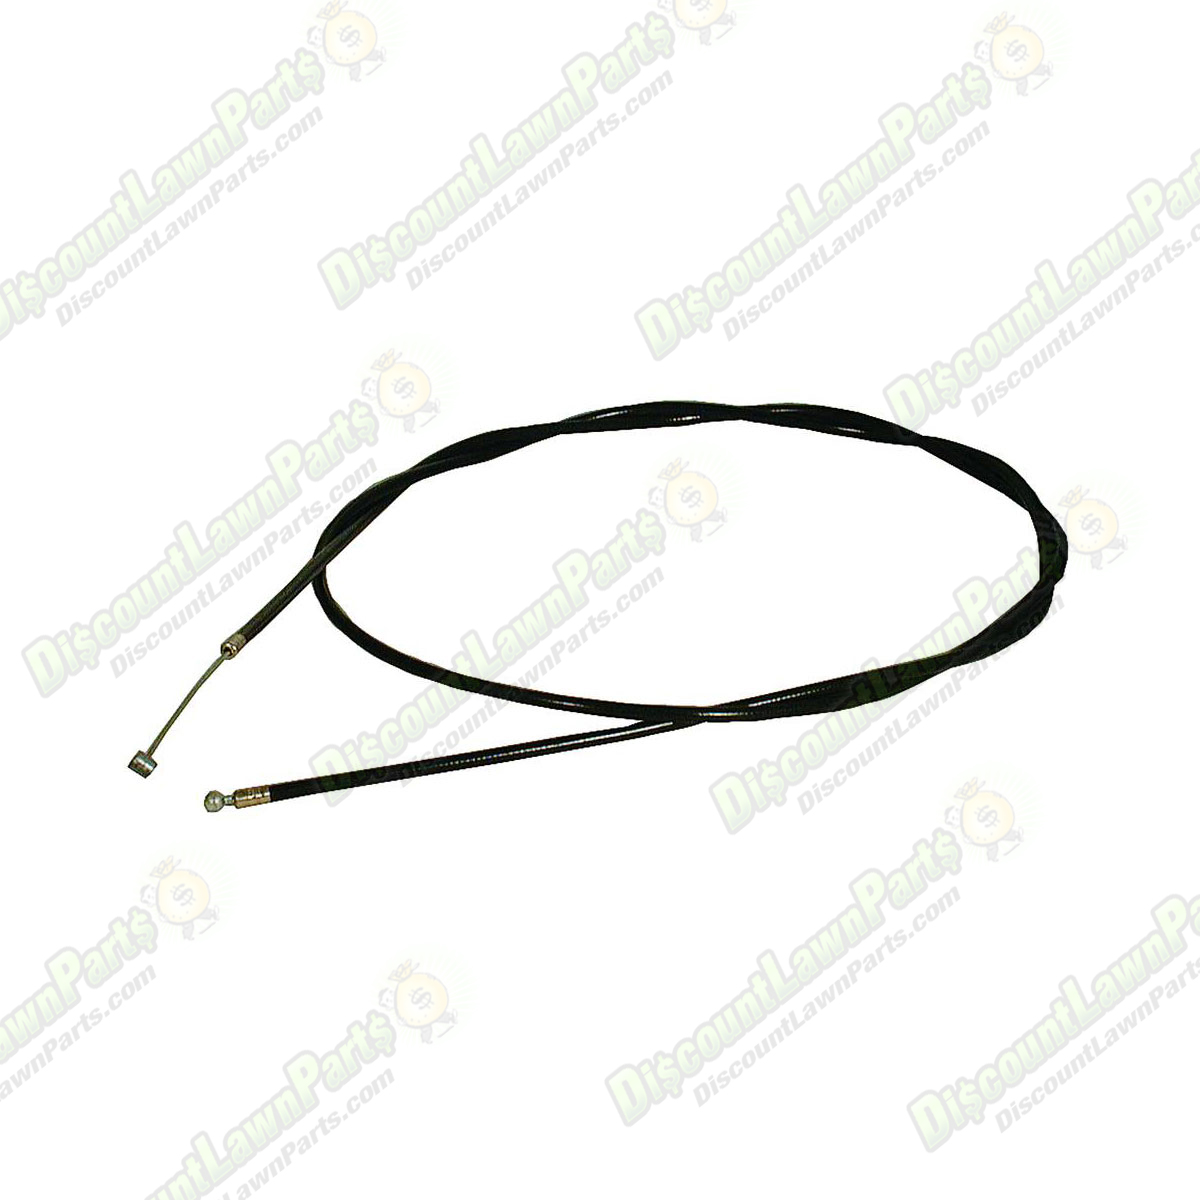 Throttle Cable 65 Inch